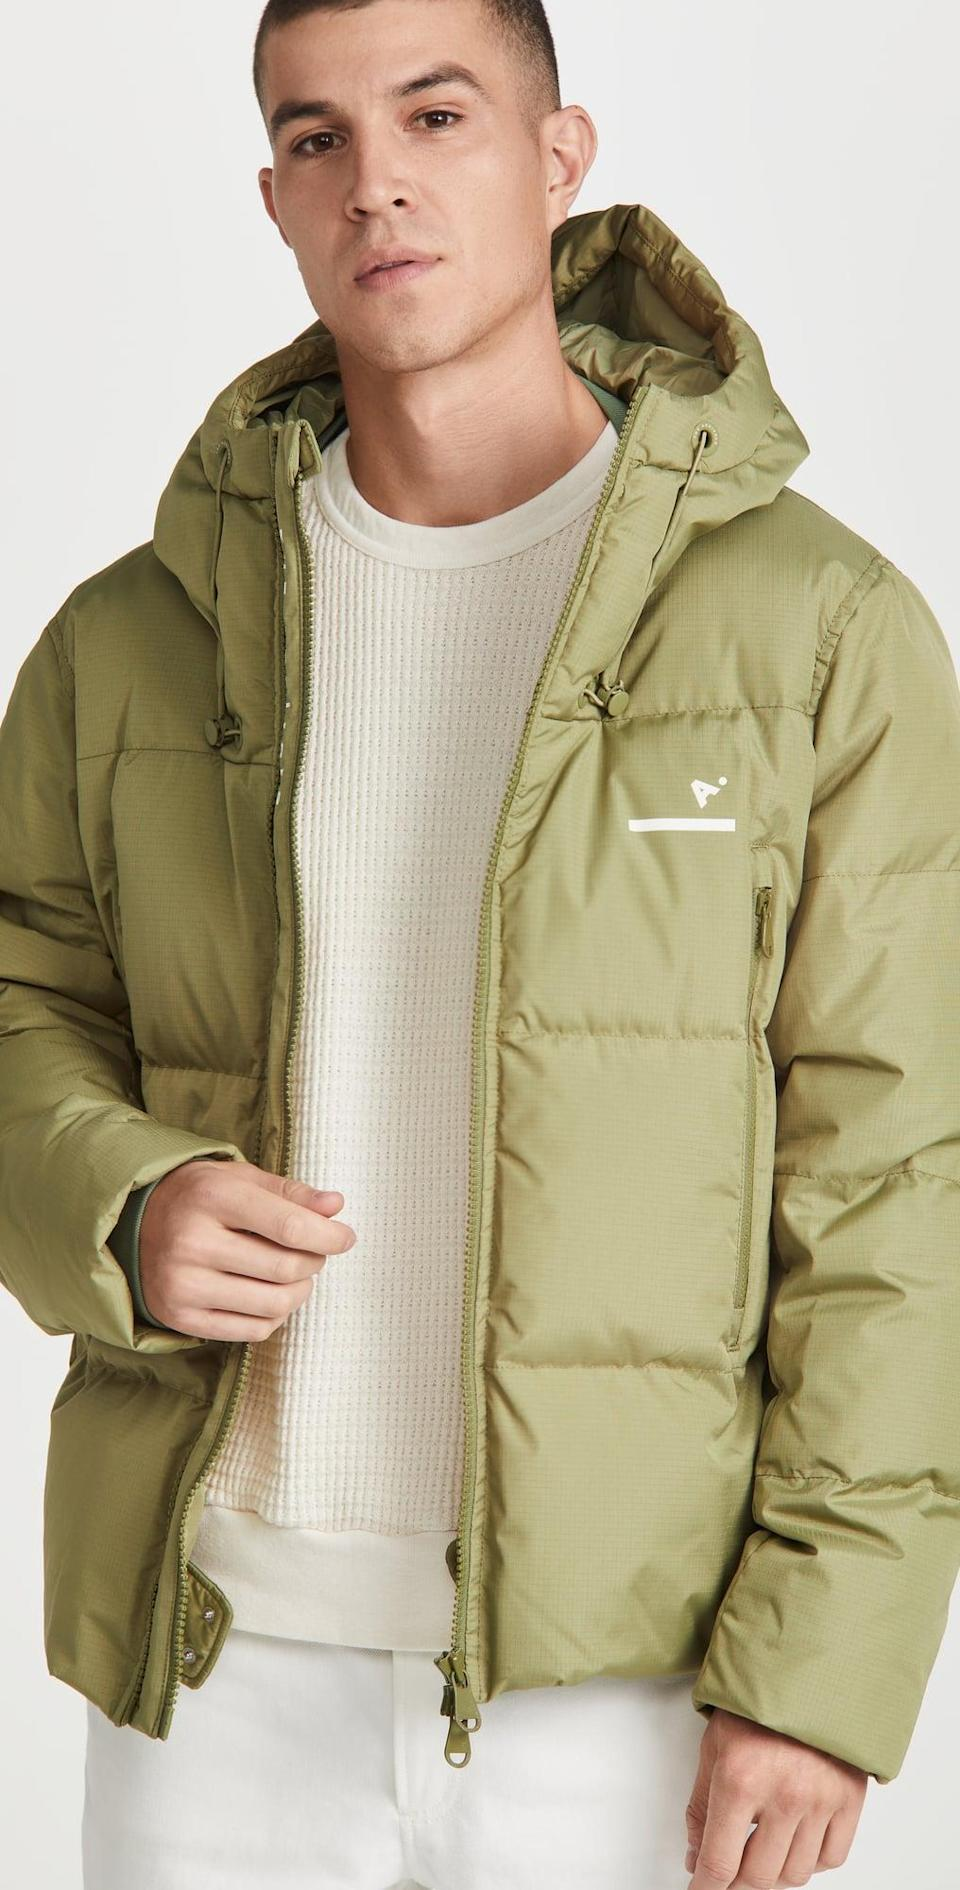 <p>This <span>The Arrivals AER Classic Puffer Jacket</span> ($495) is a splurge, but it's an investment to hold onto for years. We're drawn to the textured and luxe-looking fabric.</p>